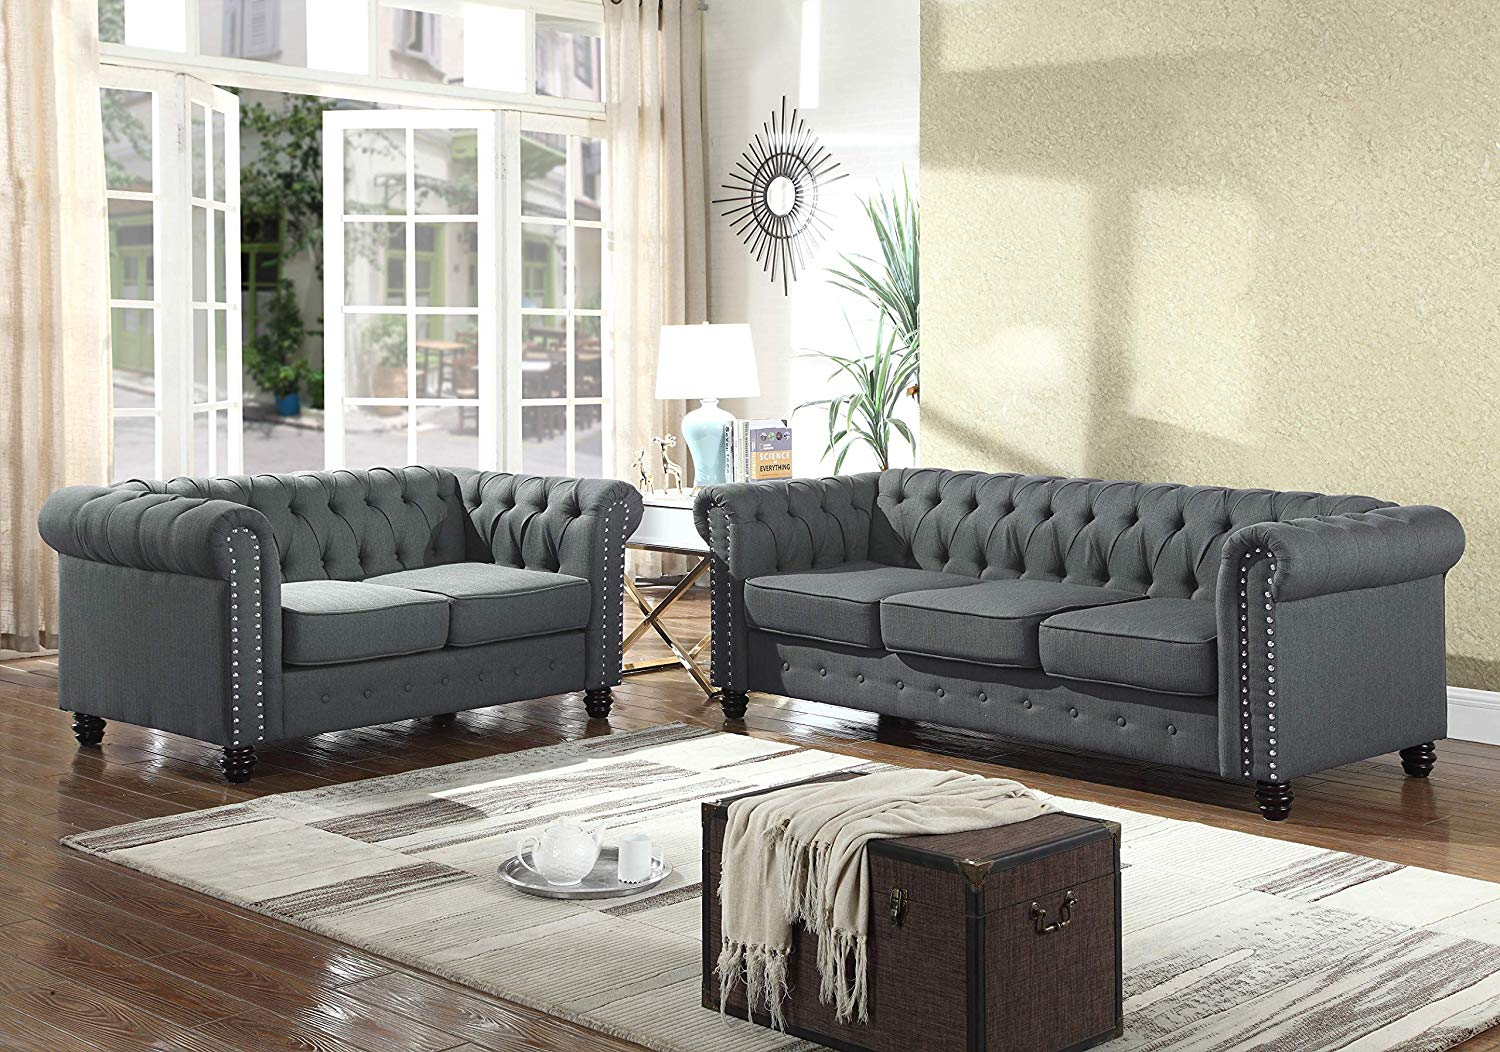 Best Master Furniture YS001 Venice 2 Piece Upholstered Sofa Set, Charcoal